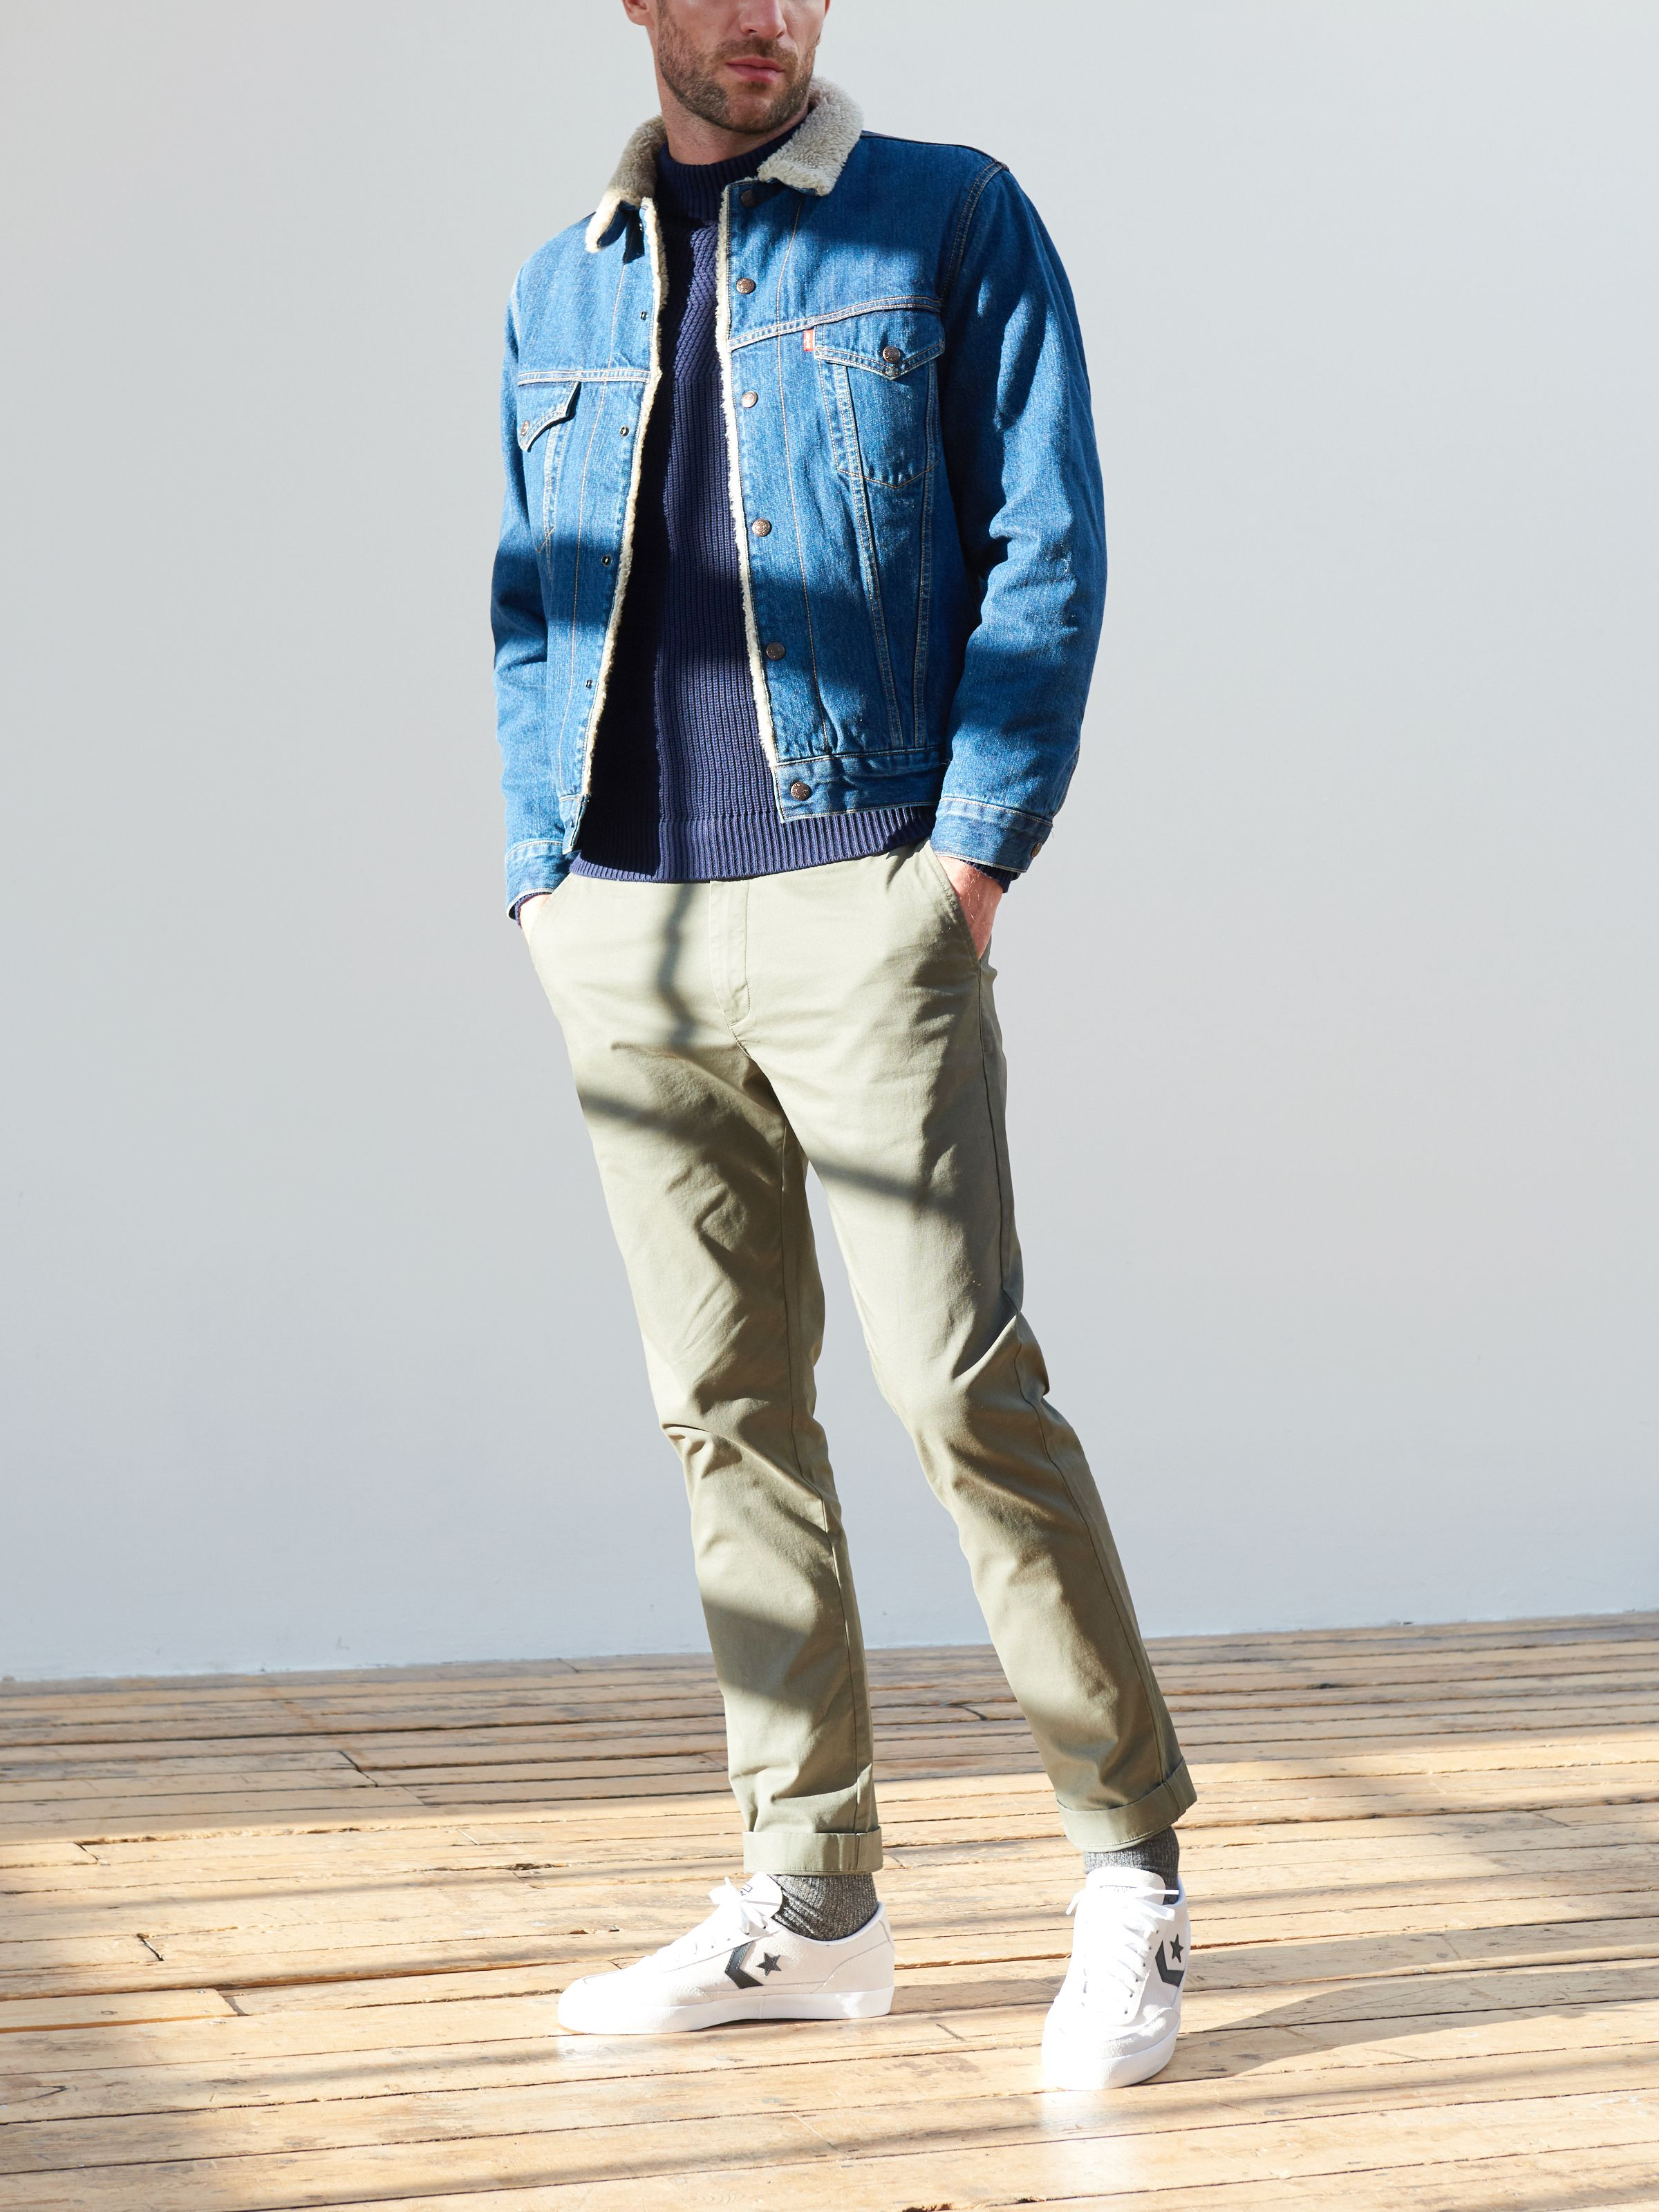 Men's outfit idea for 2021 with dark denim jacket, navy crew neck knitted sweater, colored chinos, converse. Suitable for spring and fall.